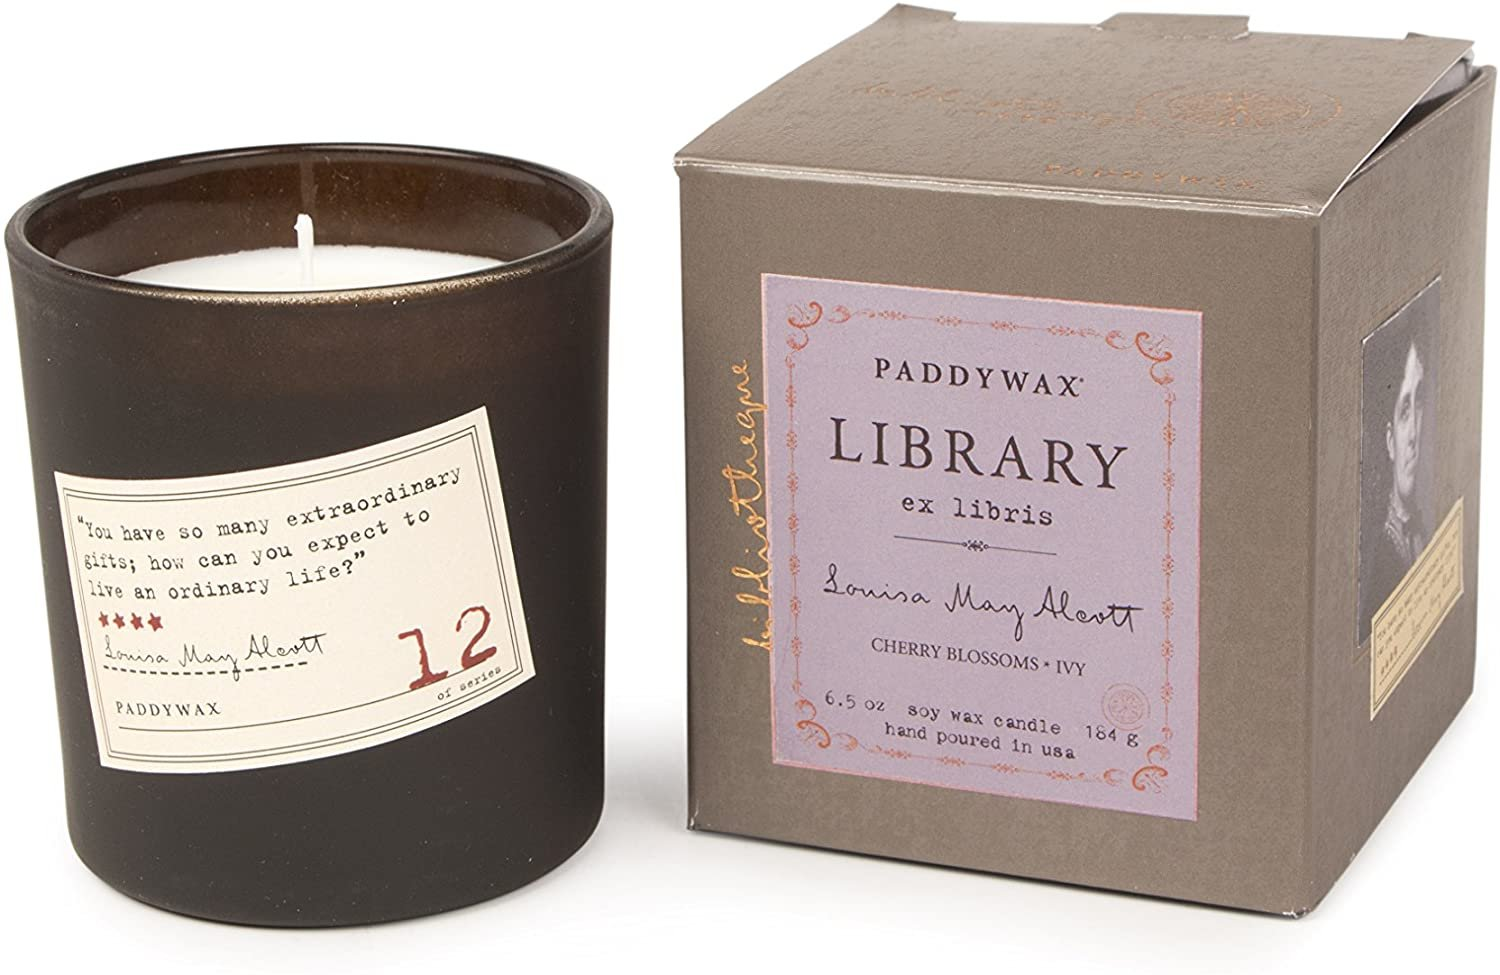 PADDYWAX- LIBRARY 6 OZ BOXED GLASS - LOUISIA MAY ALCOTT Cherry Blossoms & Ivy